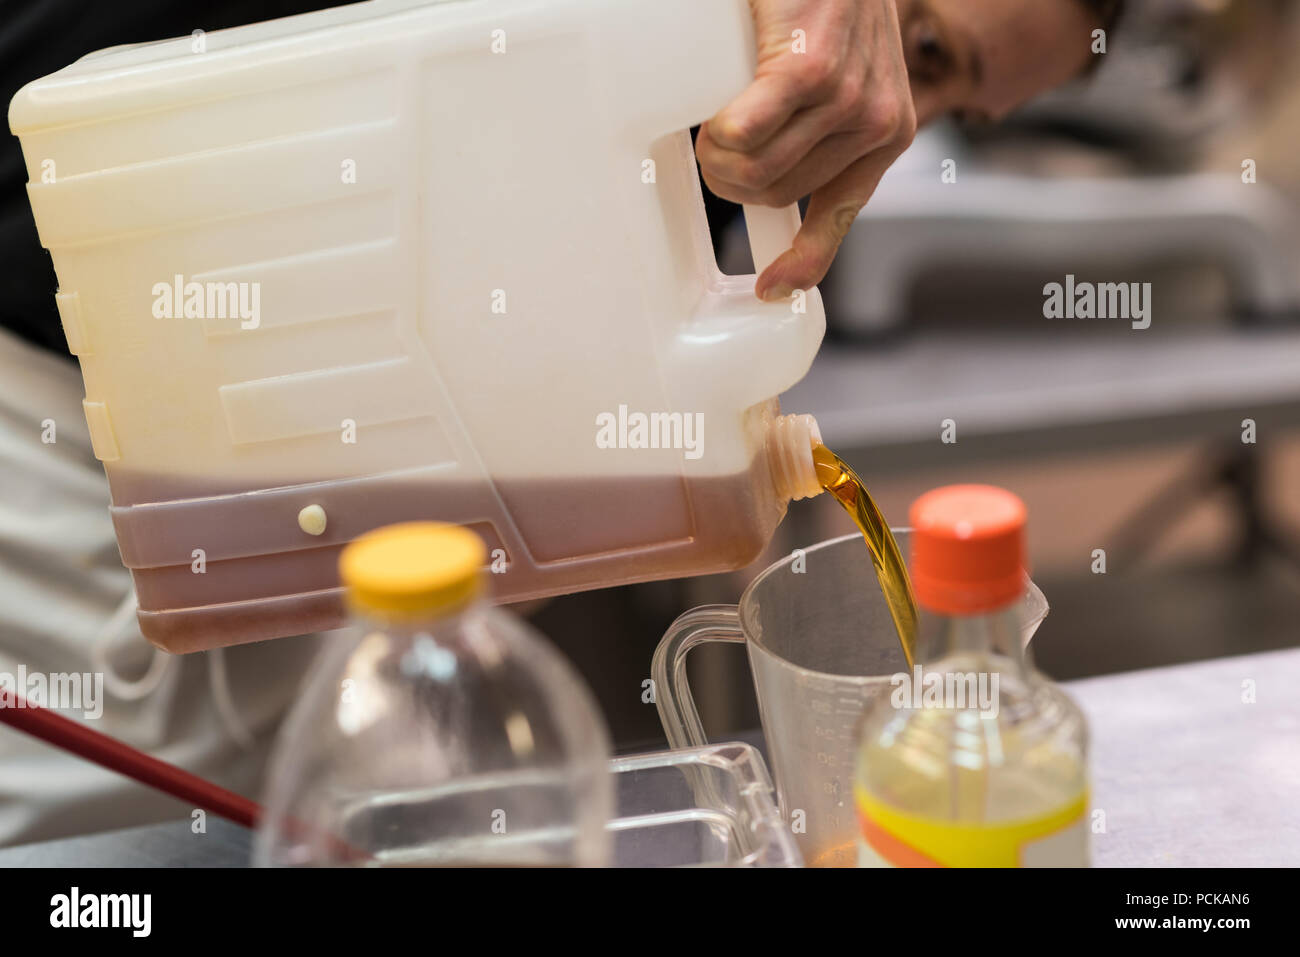 Chef pouring edible oil in a container - Stock Image